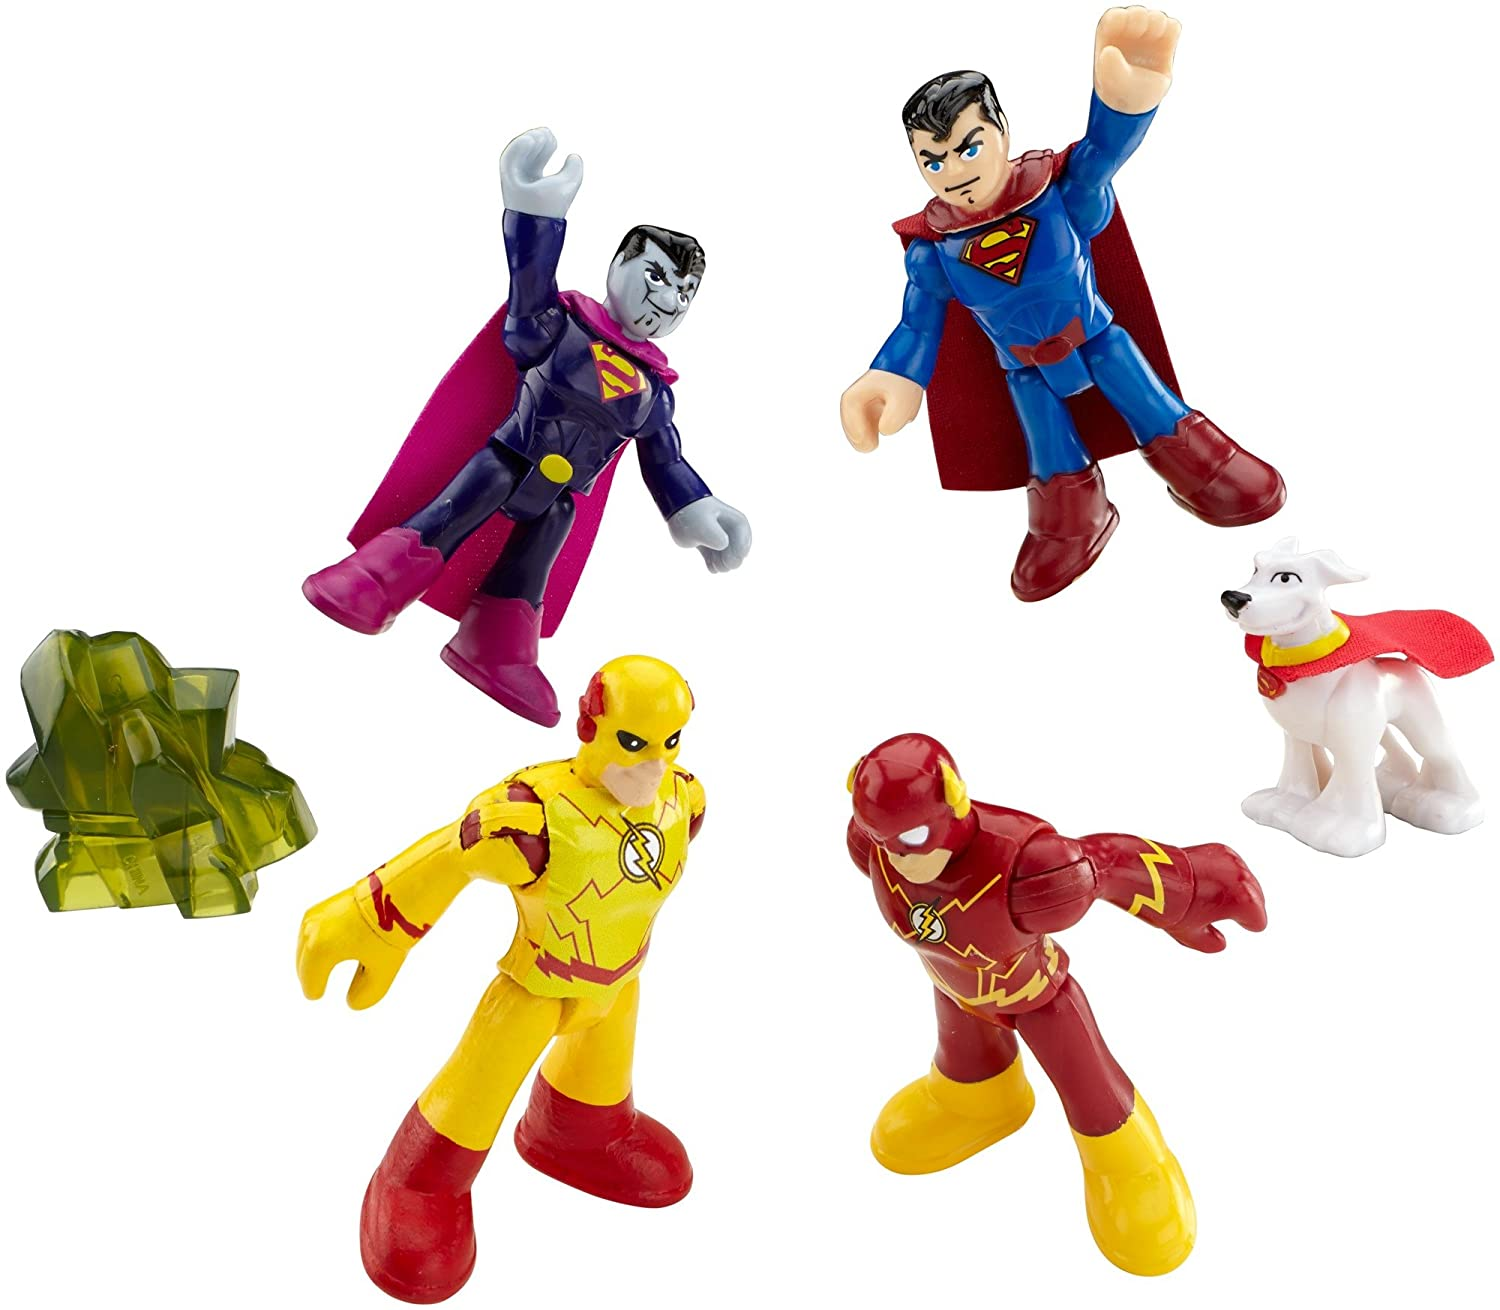 Imaginext Heroes and Villains Figures with Superman, Bizarro, The Flash and Professor Zoom, Gift for Kids from 3 Years Old Mattel CMX23